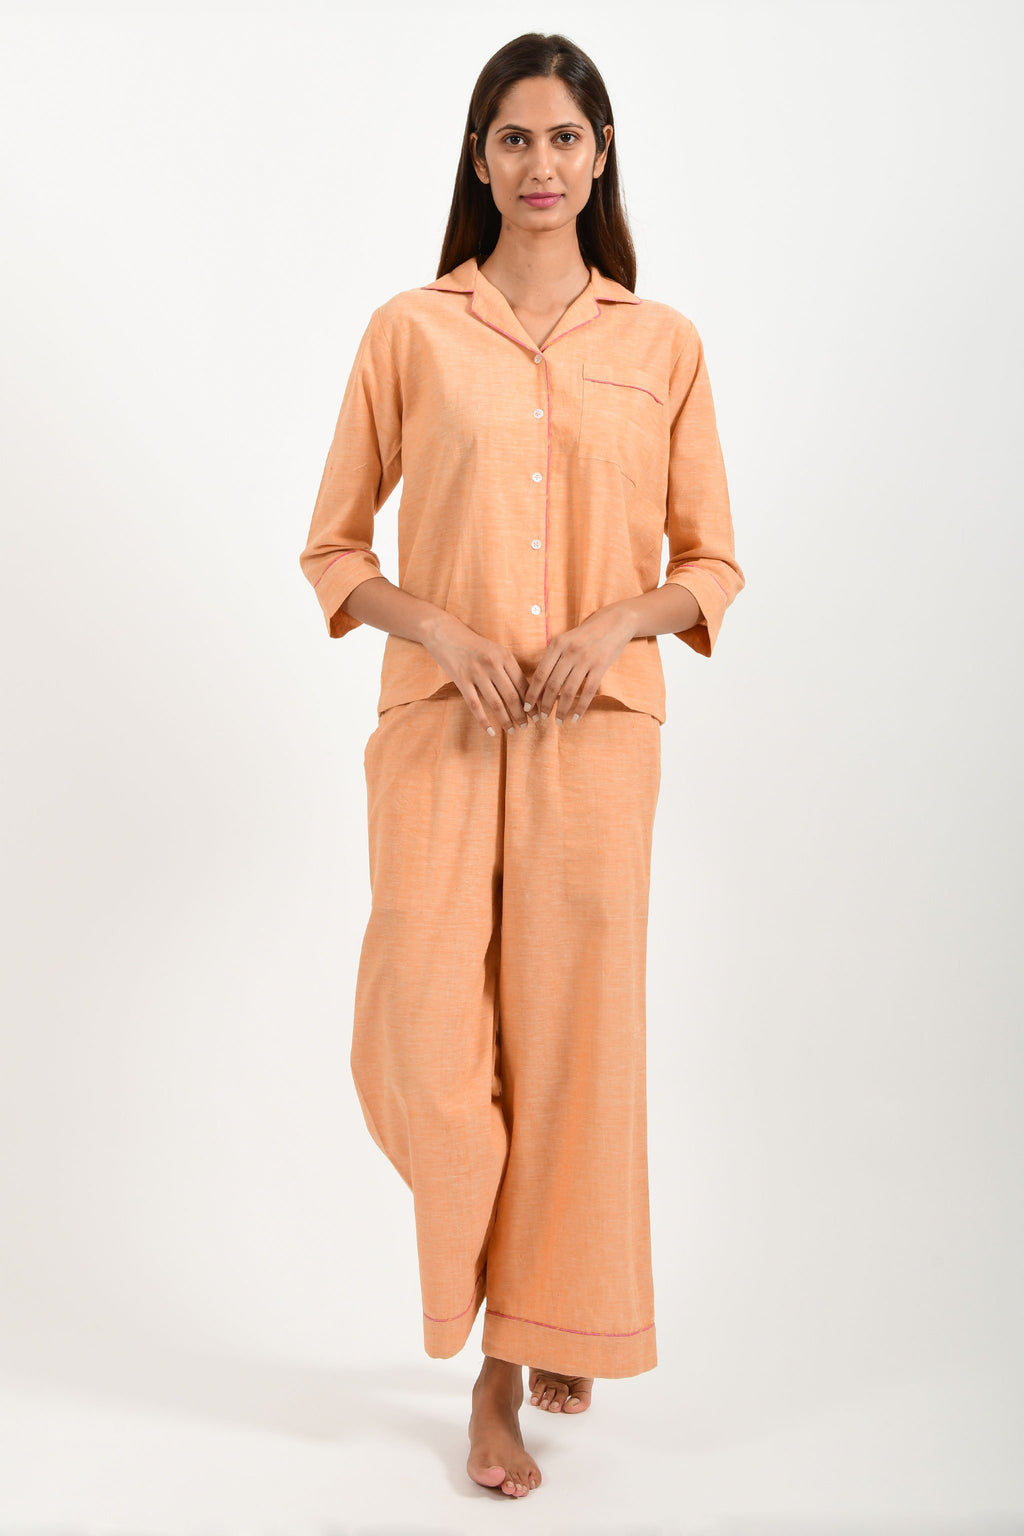 Front pose of an Indian female womenswear fashion model in azo-free dyed handspun and handwoven khadi cotton nightwear pyjama & shirt in orange chambray by Cotton Rack.